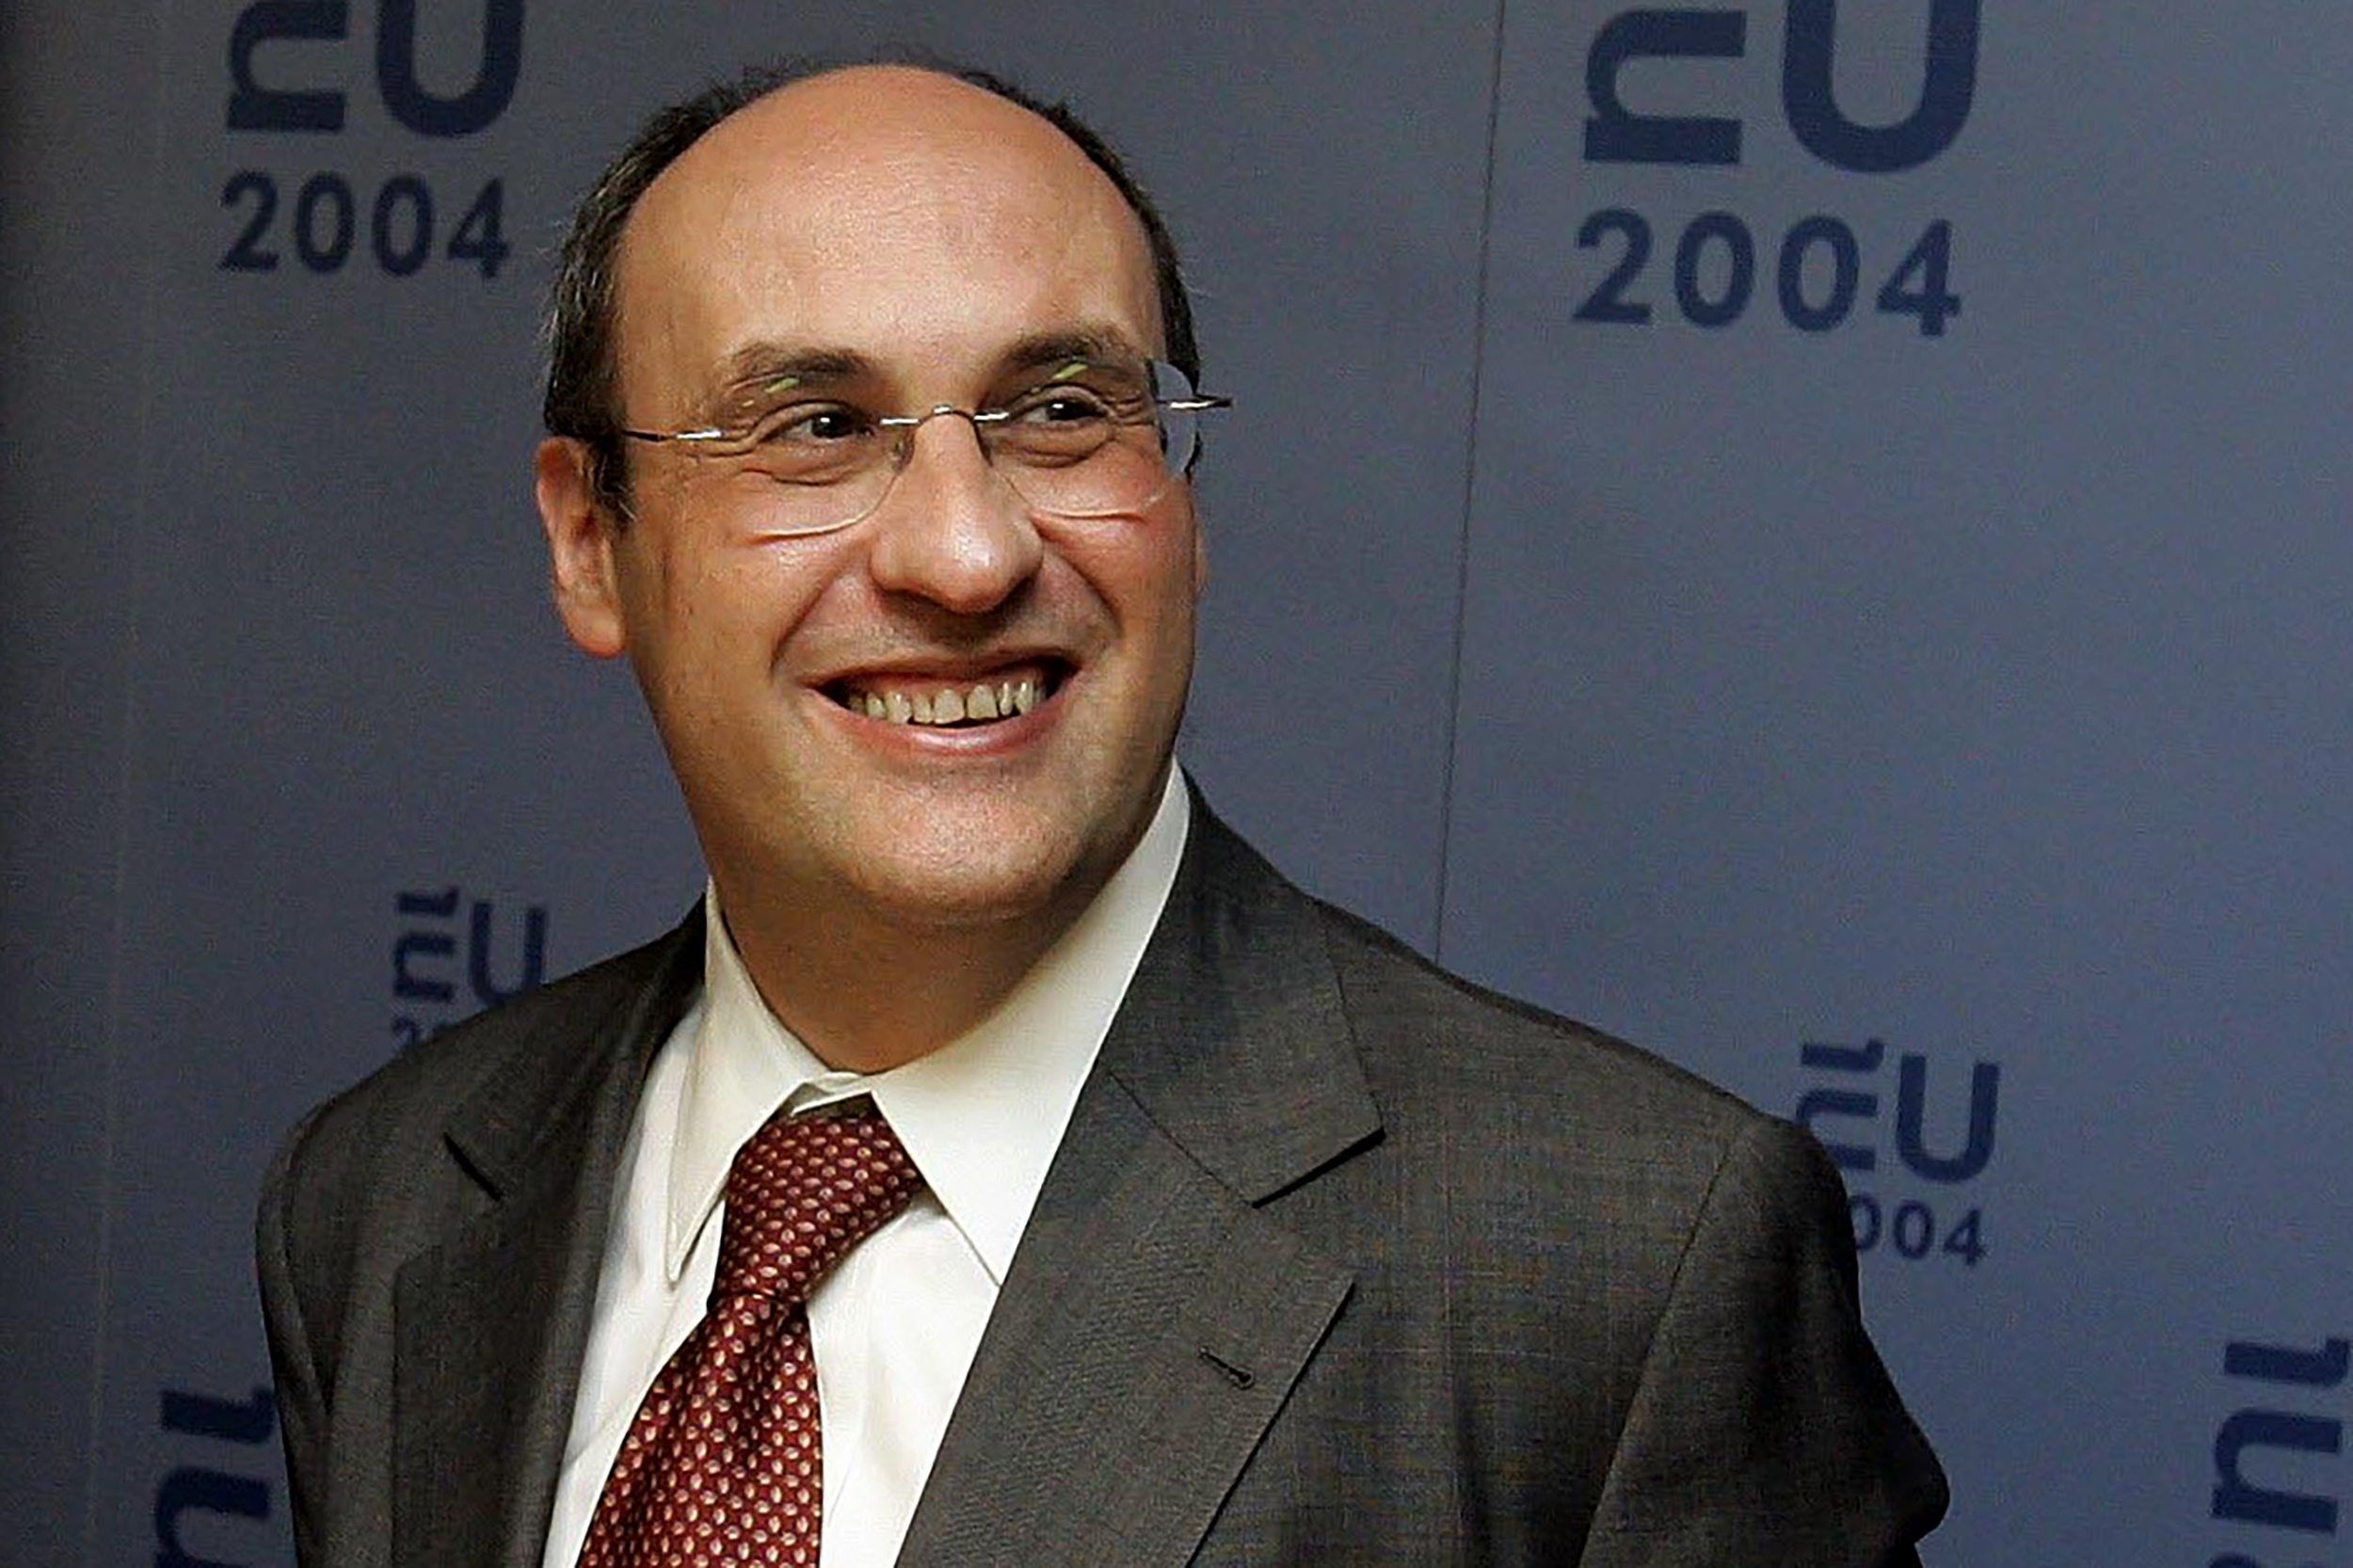 FILE - Then-European Commissioner for Justice and Home Affairs Antonio Vitorino smiles following a meeting between the EU and the U.S. in The Hague, Sept. 18, 2004.